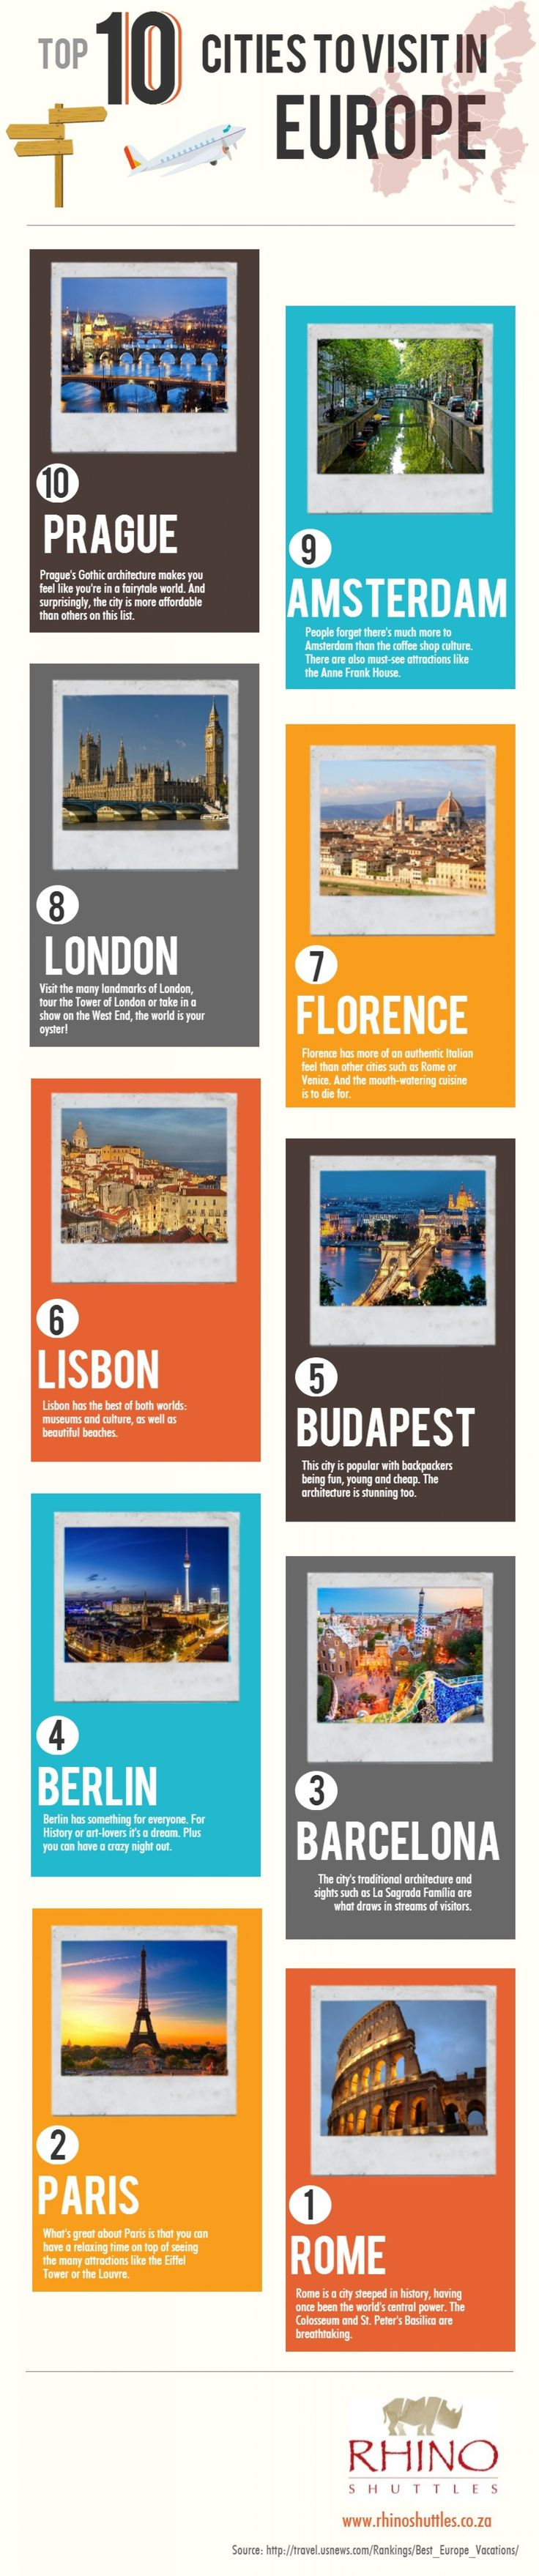 From Prague to Rome, we countdown the top cities in Europe that are renowned  for their architecture, steeped in history and are great fun to visit.